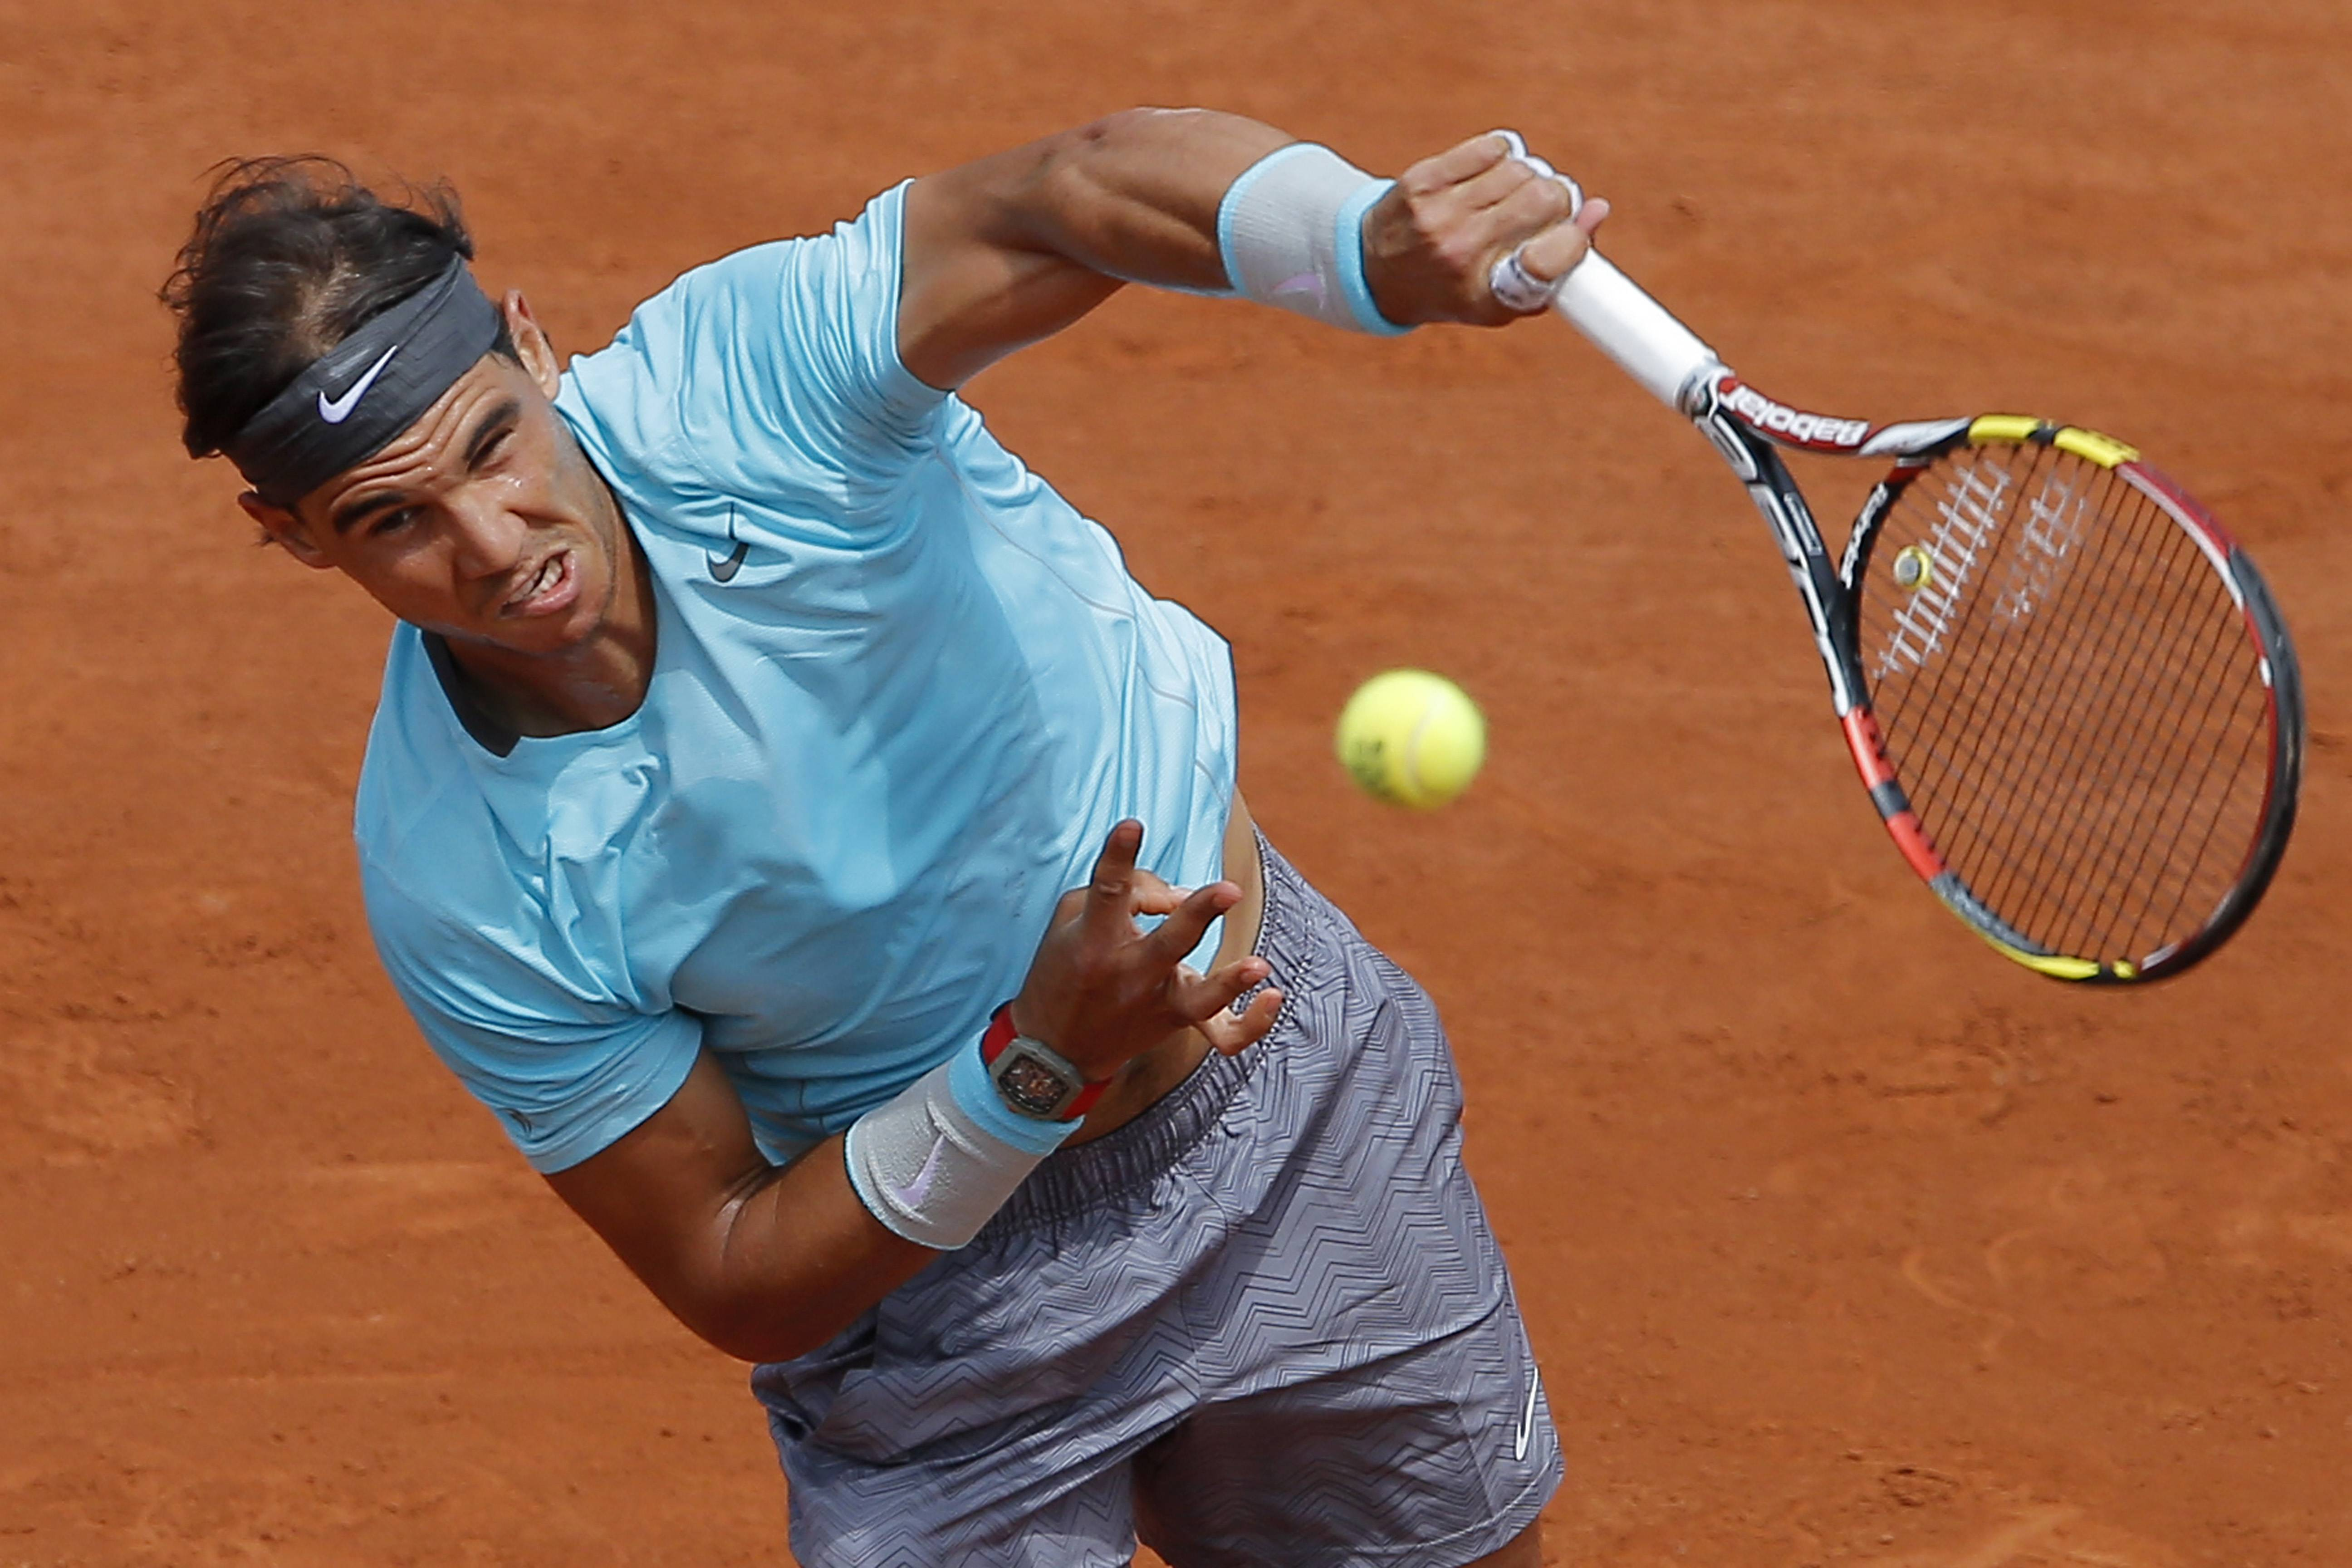 Spain's Rafael Nadal serves the ball Monday during the fourth round match of the French Open tennis tournament against Serbia's Dusan Lajovic at the Roland Garros stadium in Paris.